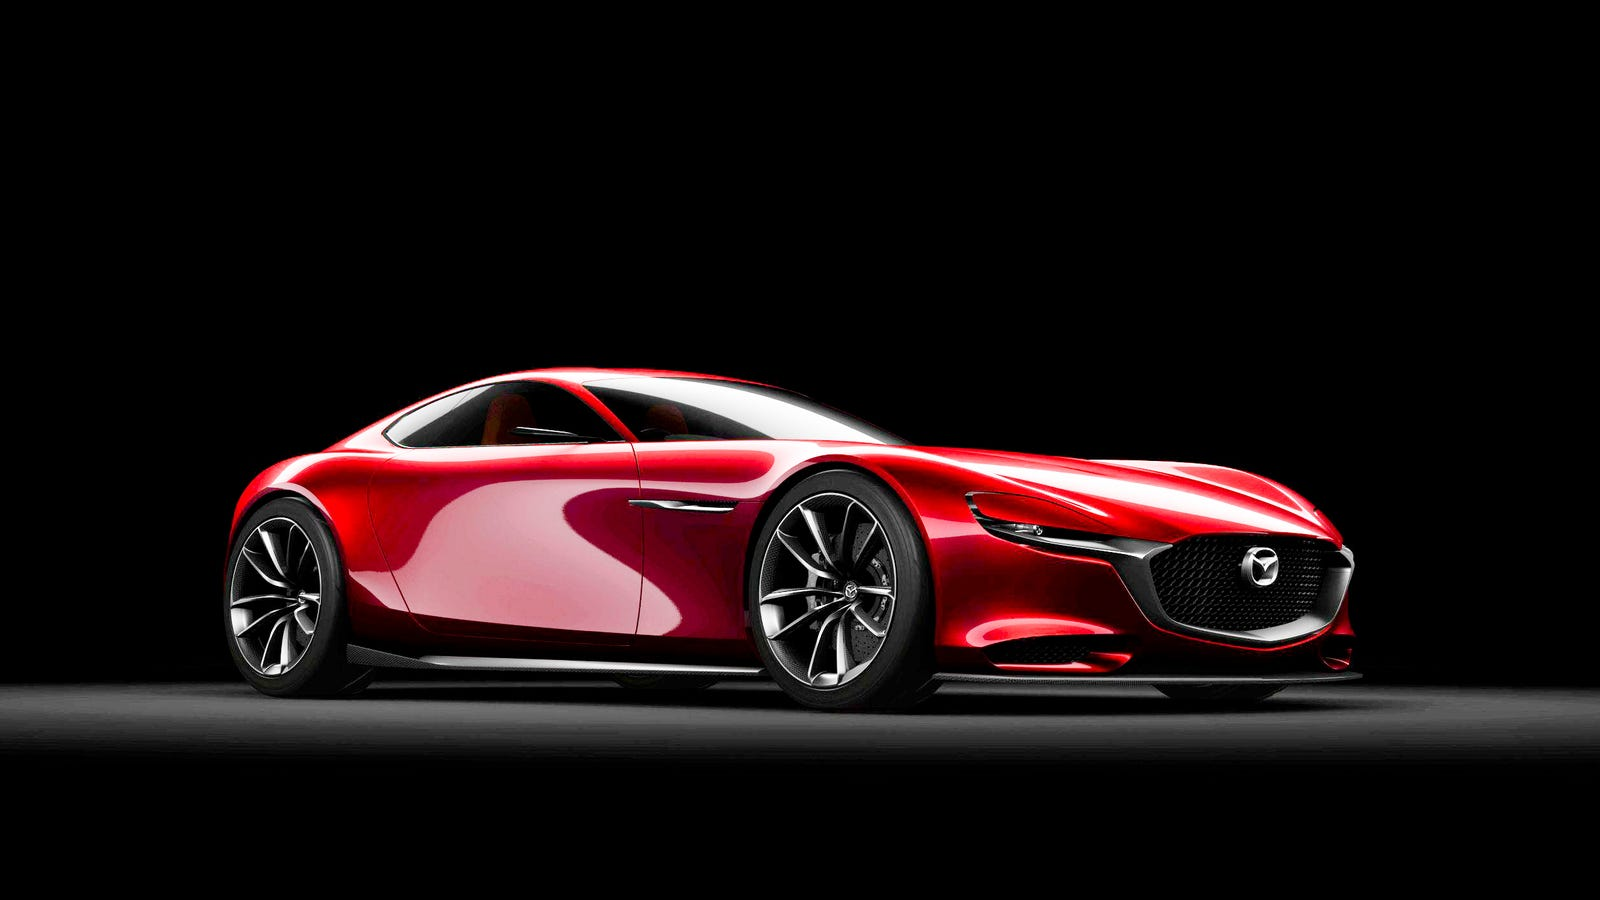 Mazda CEO Says New Rotary Sports Car Totally Isn't